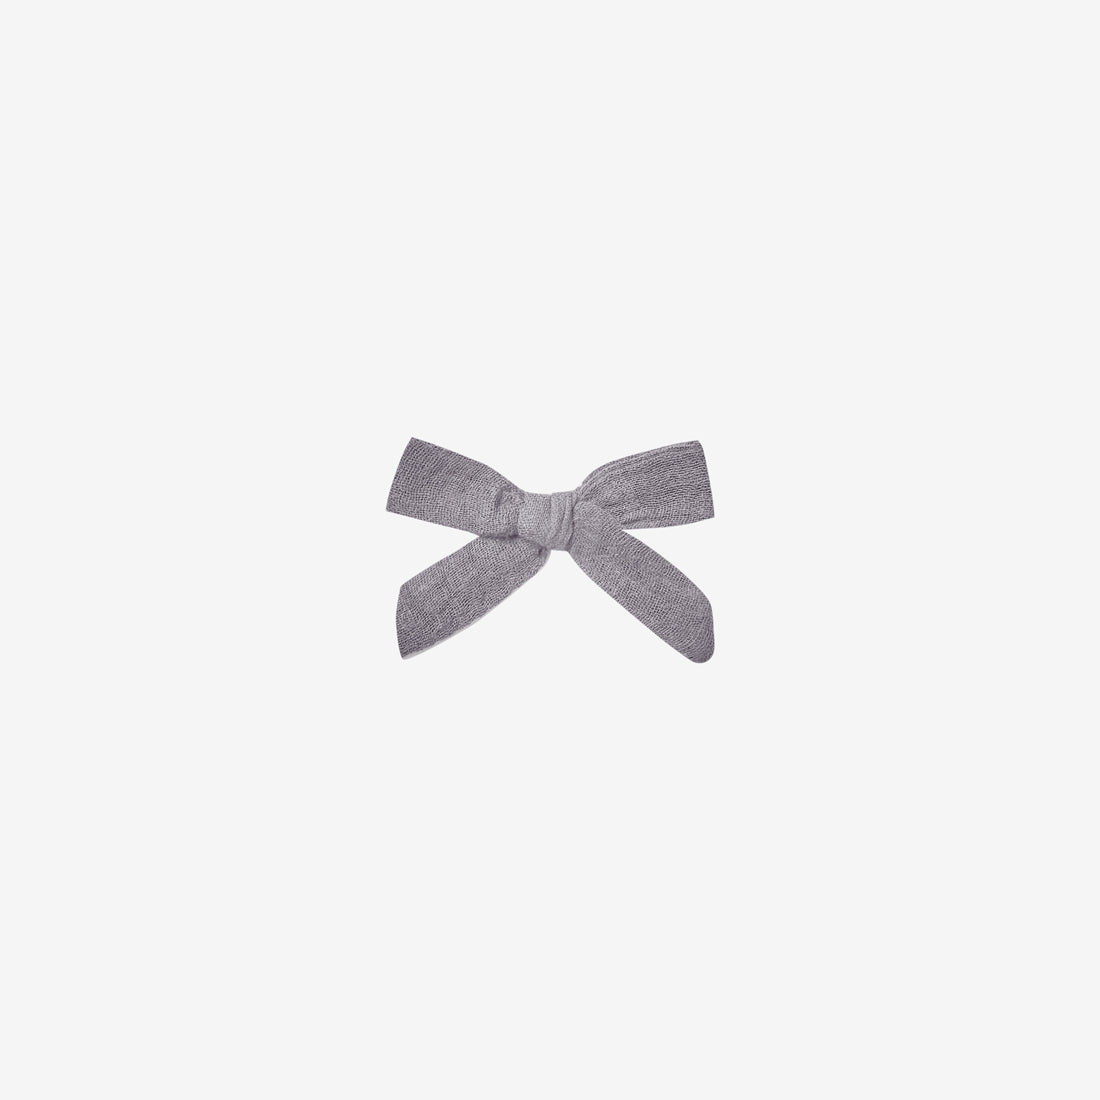 Cotton Woven Hair Bow Clip - Periwinkle